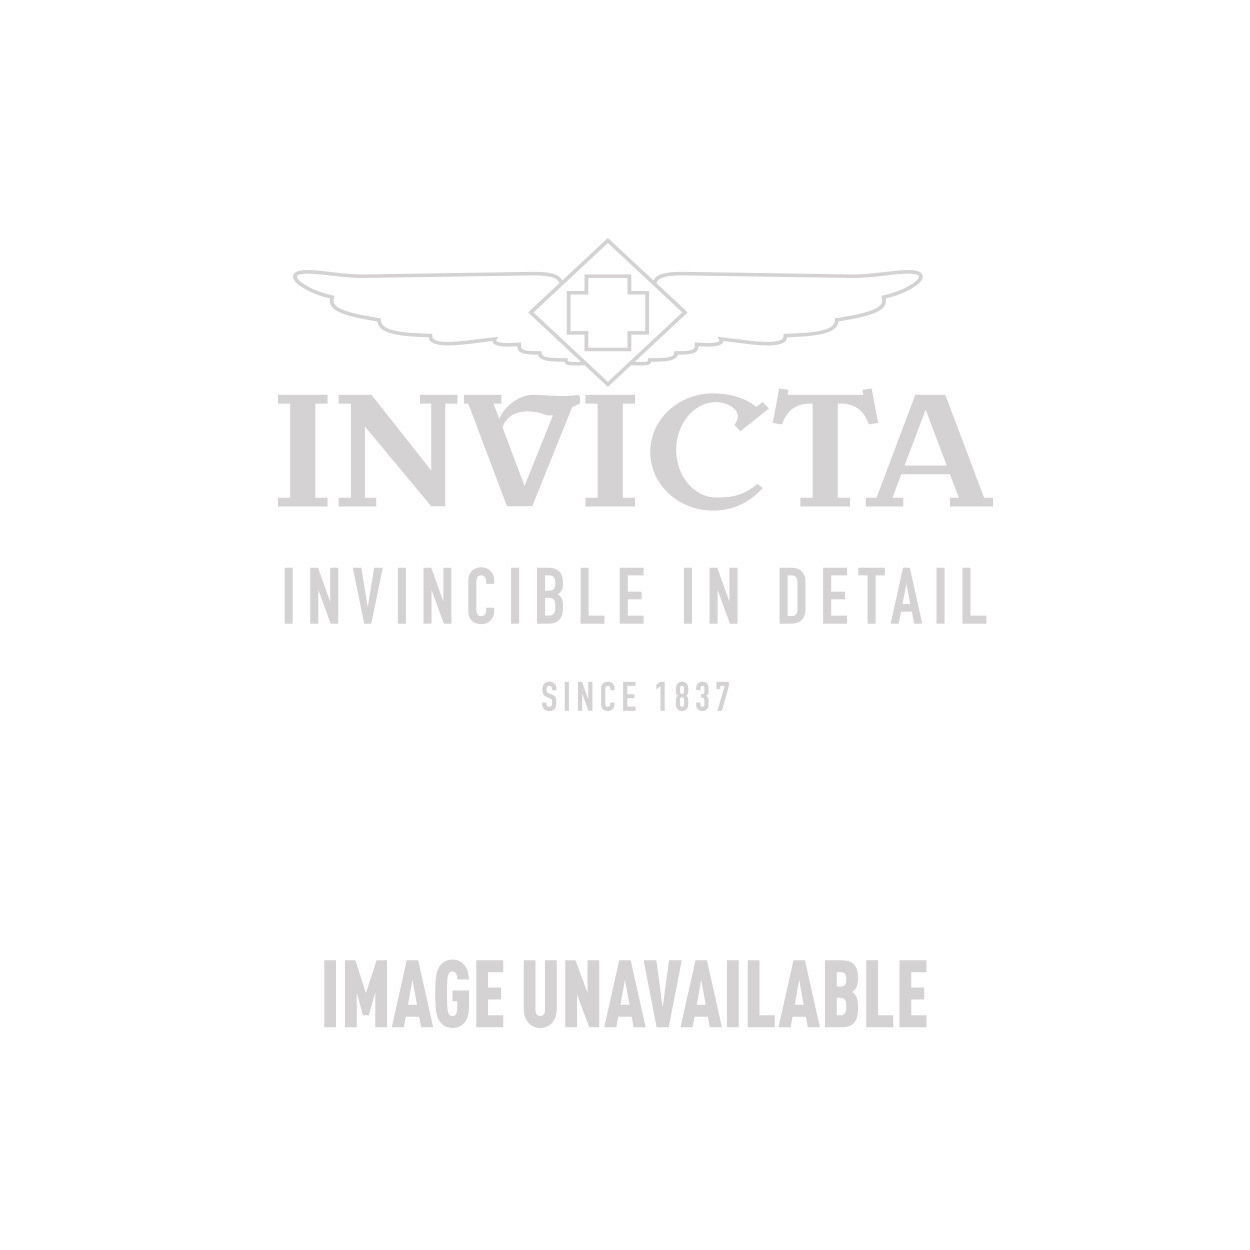 Invicta Specialty Quartz Watch - Gunmetal, Stainless Steel case with Steel, Gunmetal tone Stainless Steel band - Model 21389